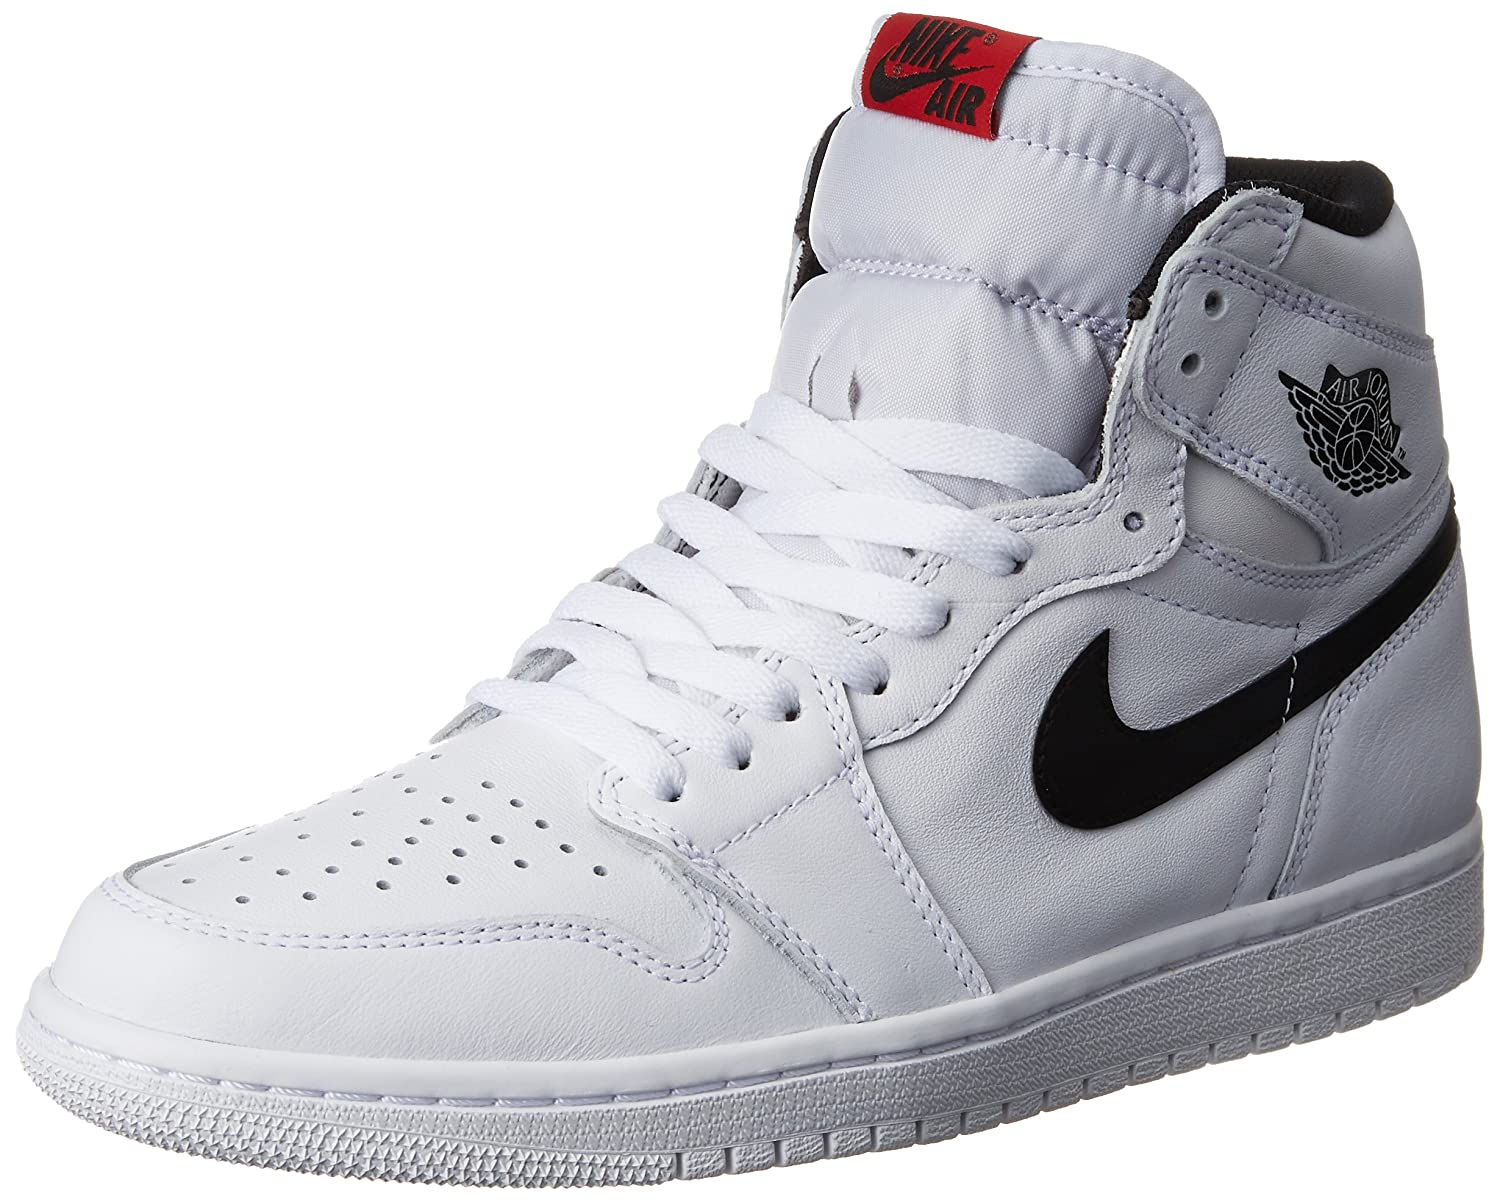 big sale 4d95c 3bda8 Amazon.com  Air Jordan 1 Retro High OG - 555088 102  Jordan  Sports    Outdoors